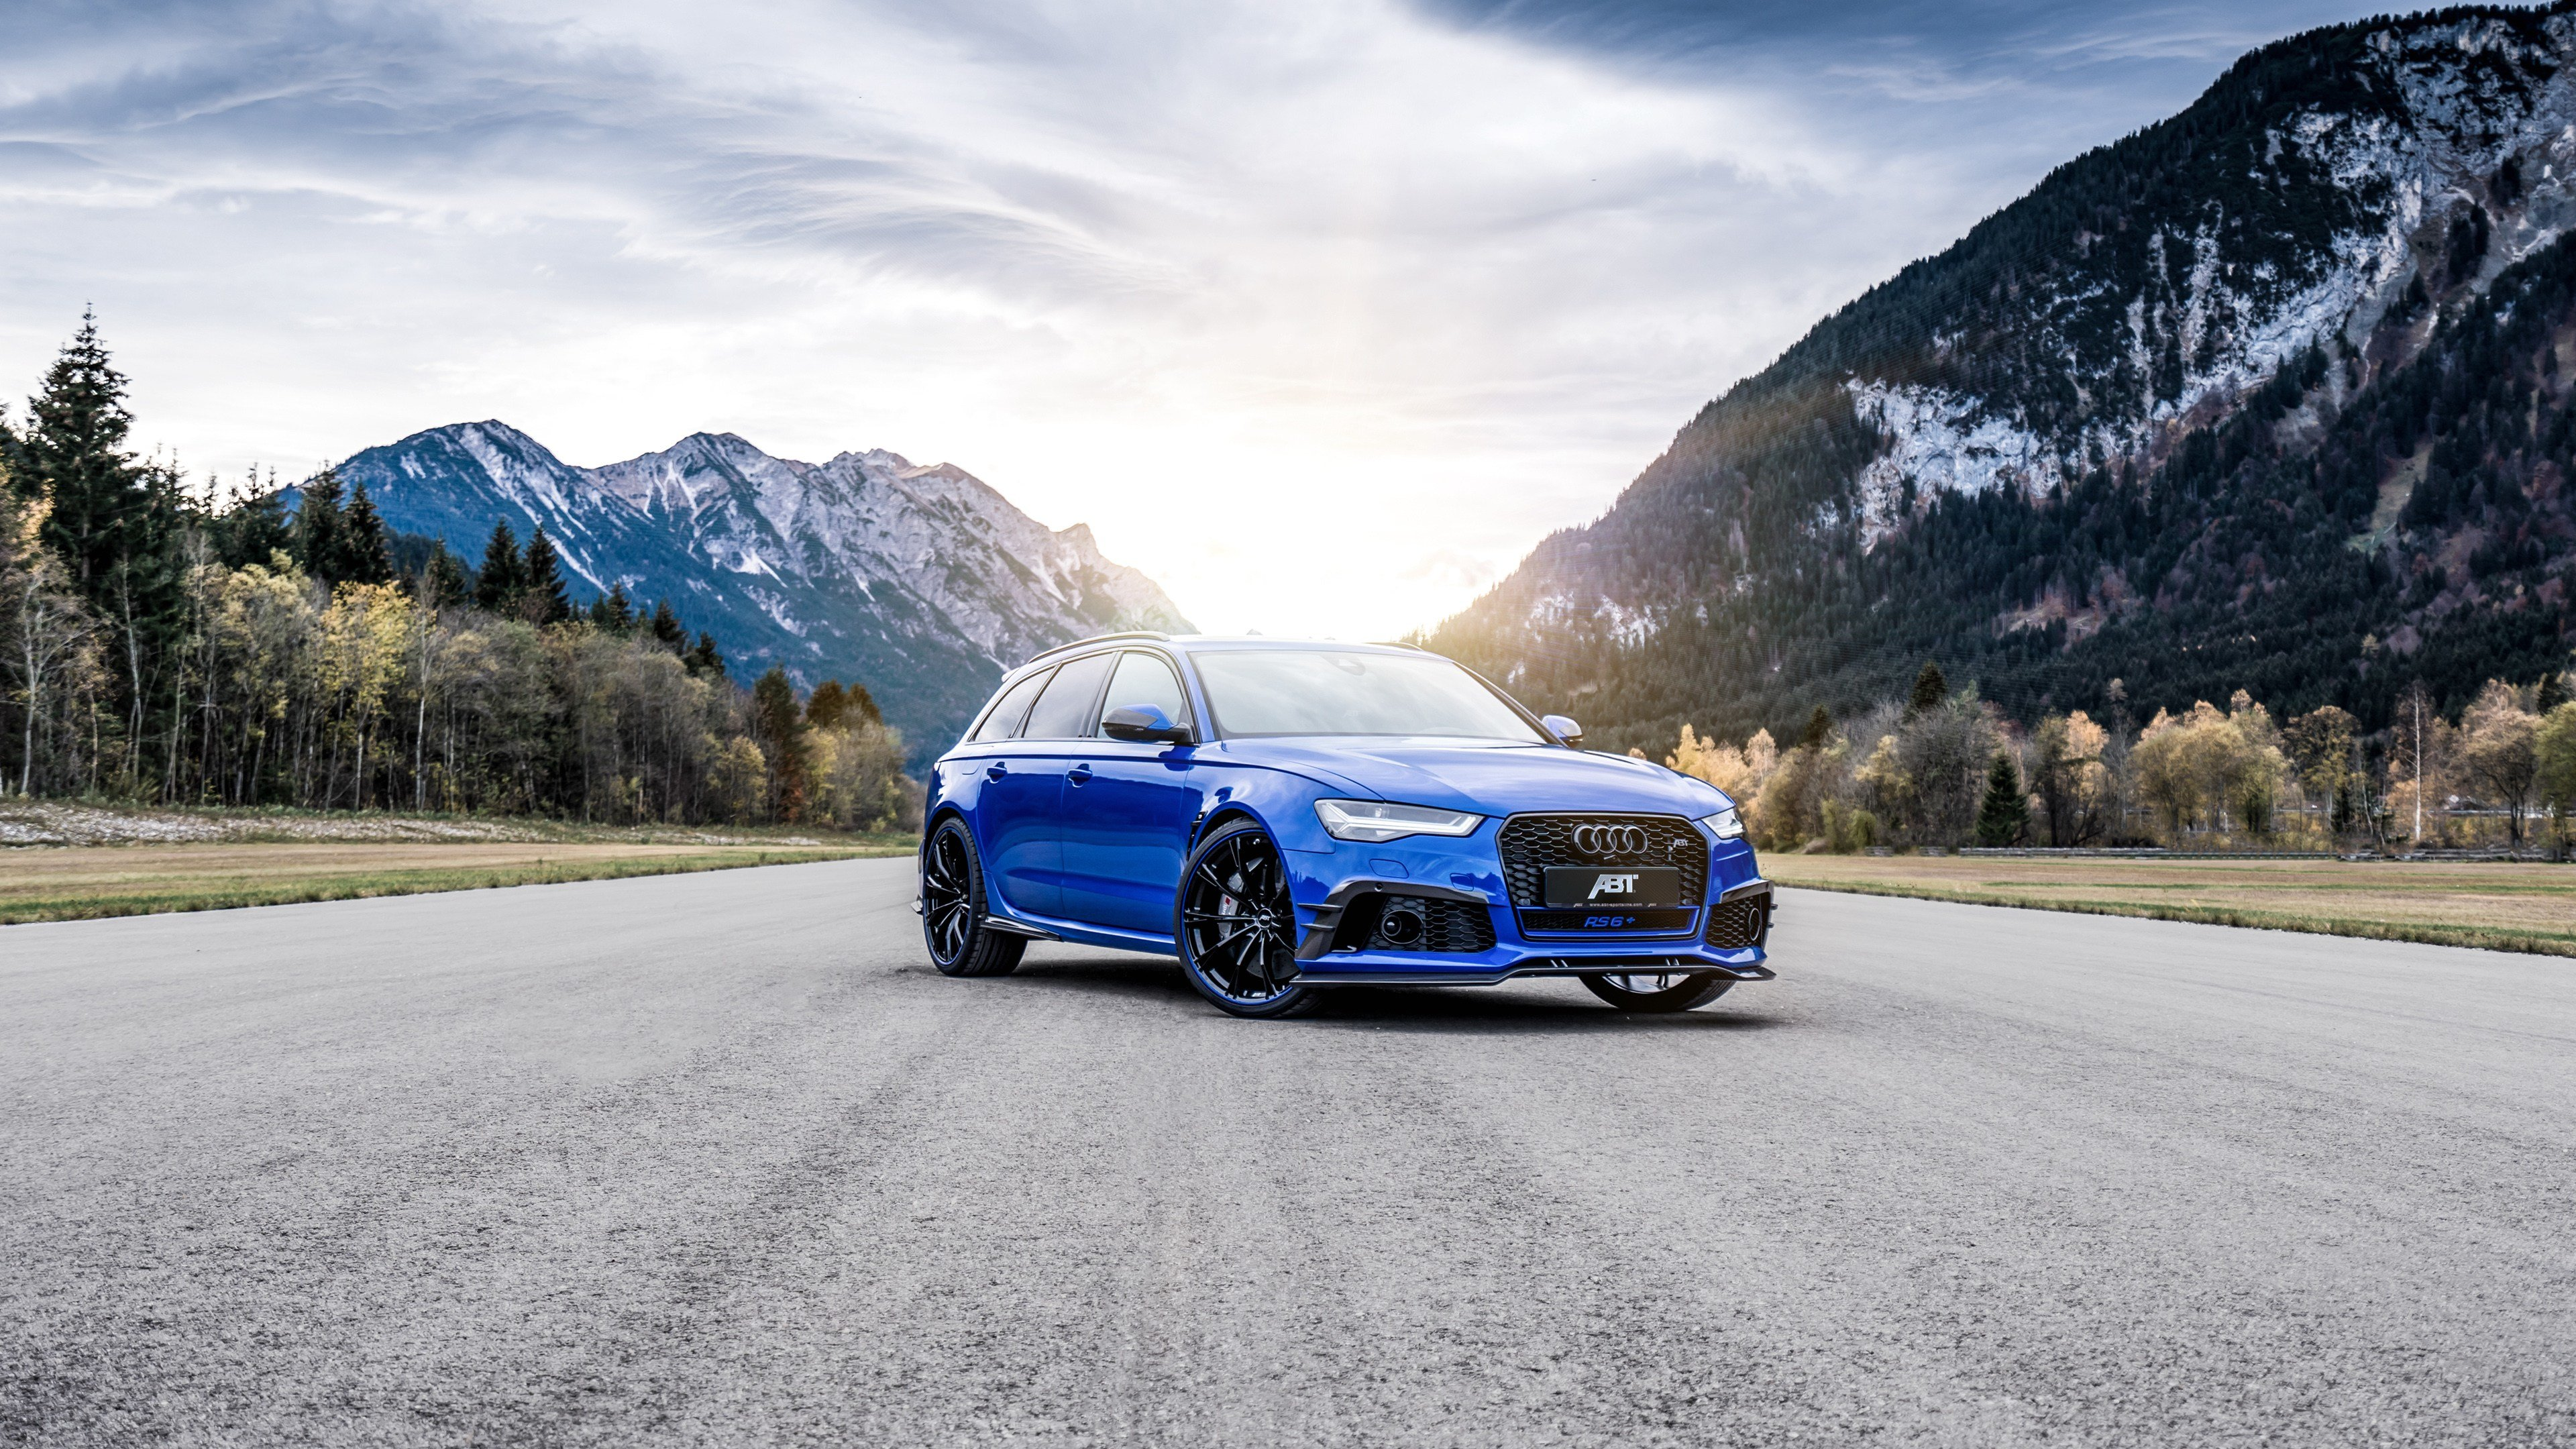 Latest Abt Audi Rs 6 Nogaro Edition 4K Wallpaper Hd Car Free Download